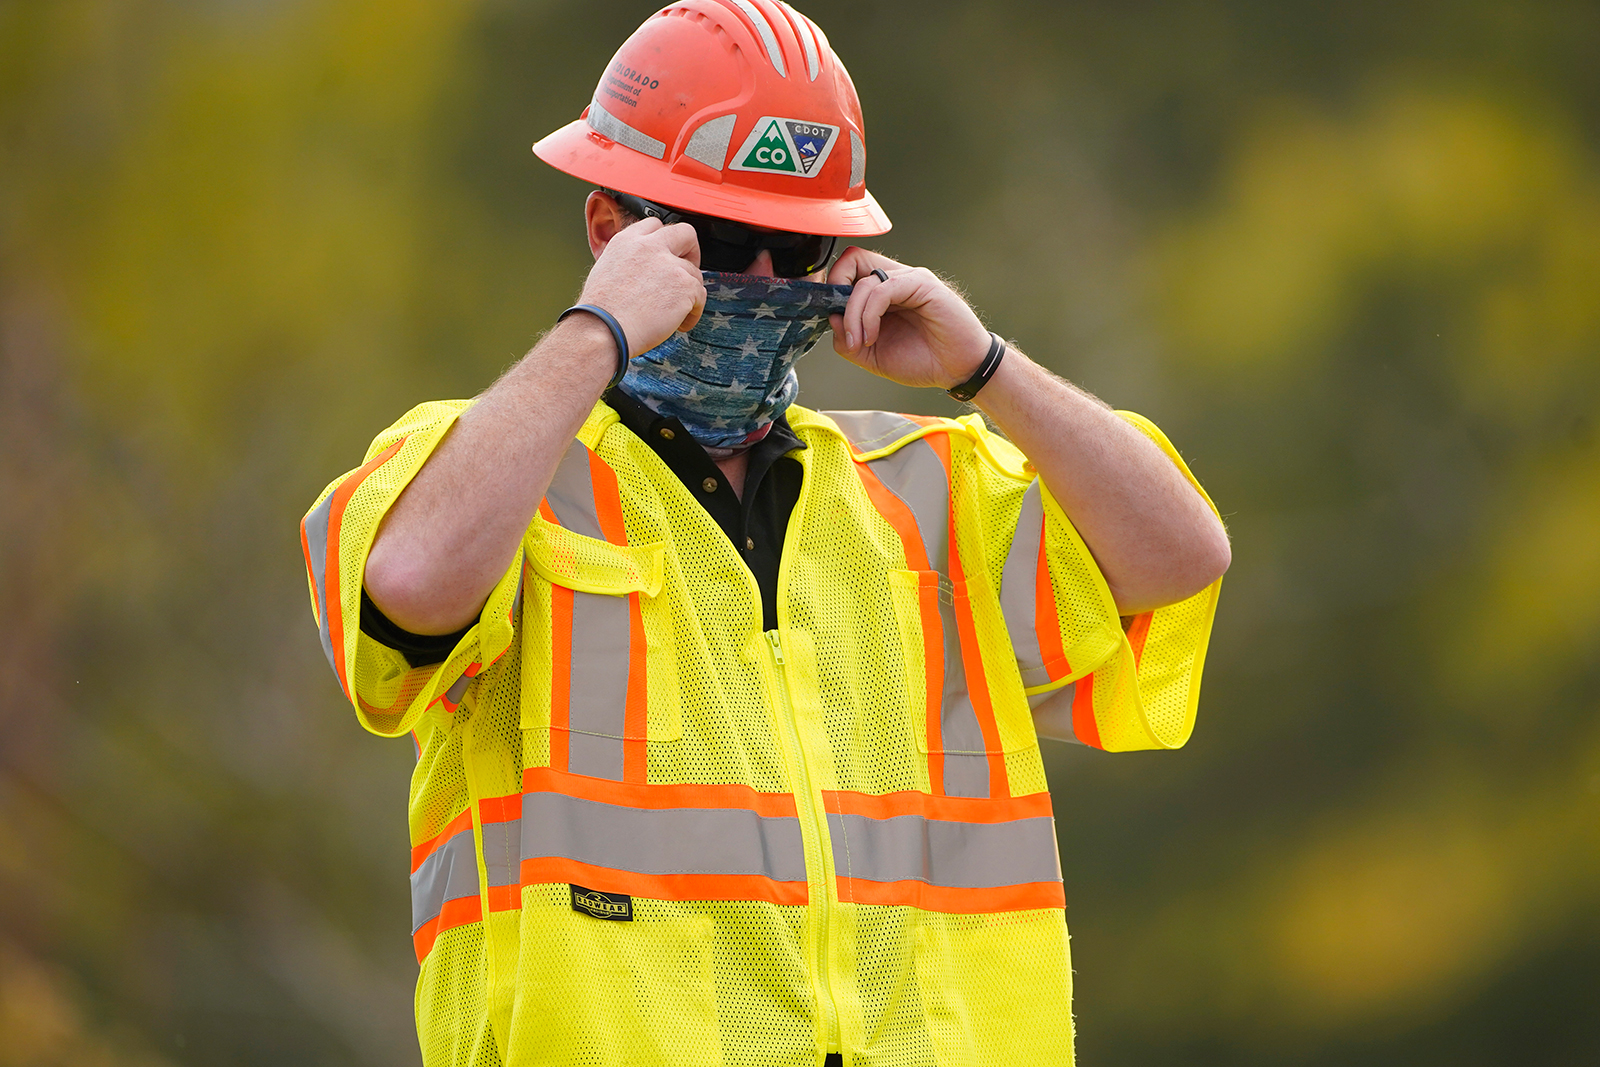 A Colorado Department of Transportation worker pulls on his face covering while staffing a roadblock into a housing area along Highway 7 as several wildfires burn in the state on October 21, in Lyons, Colorado.